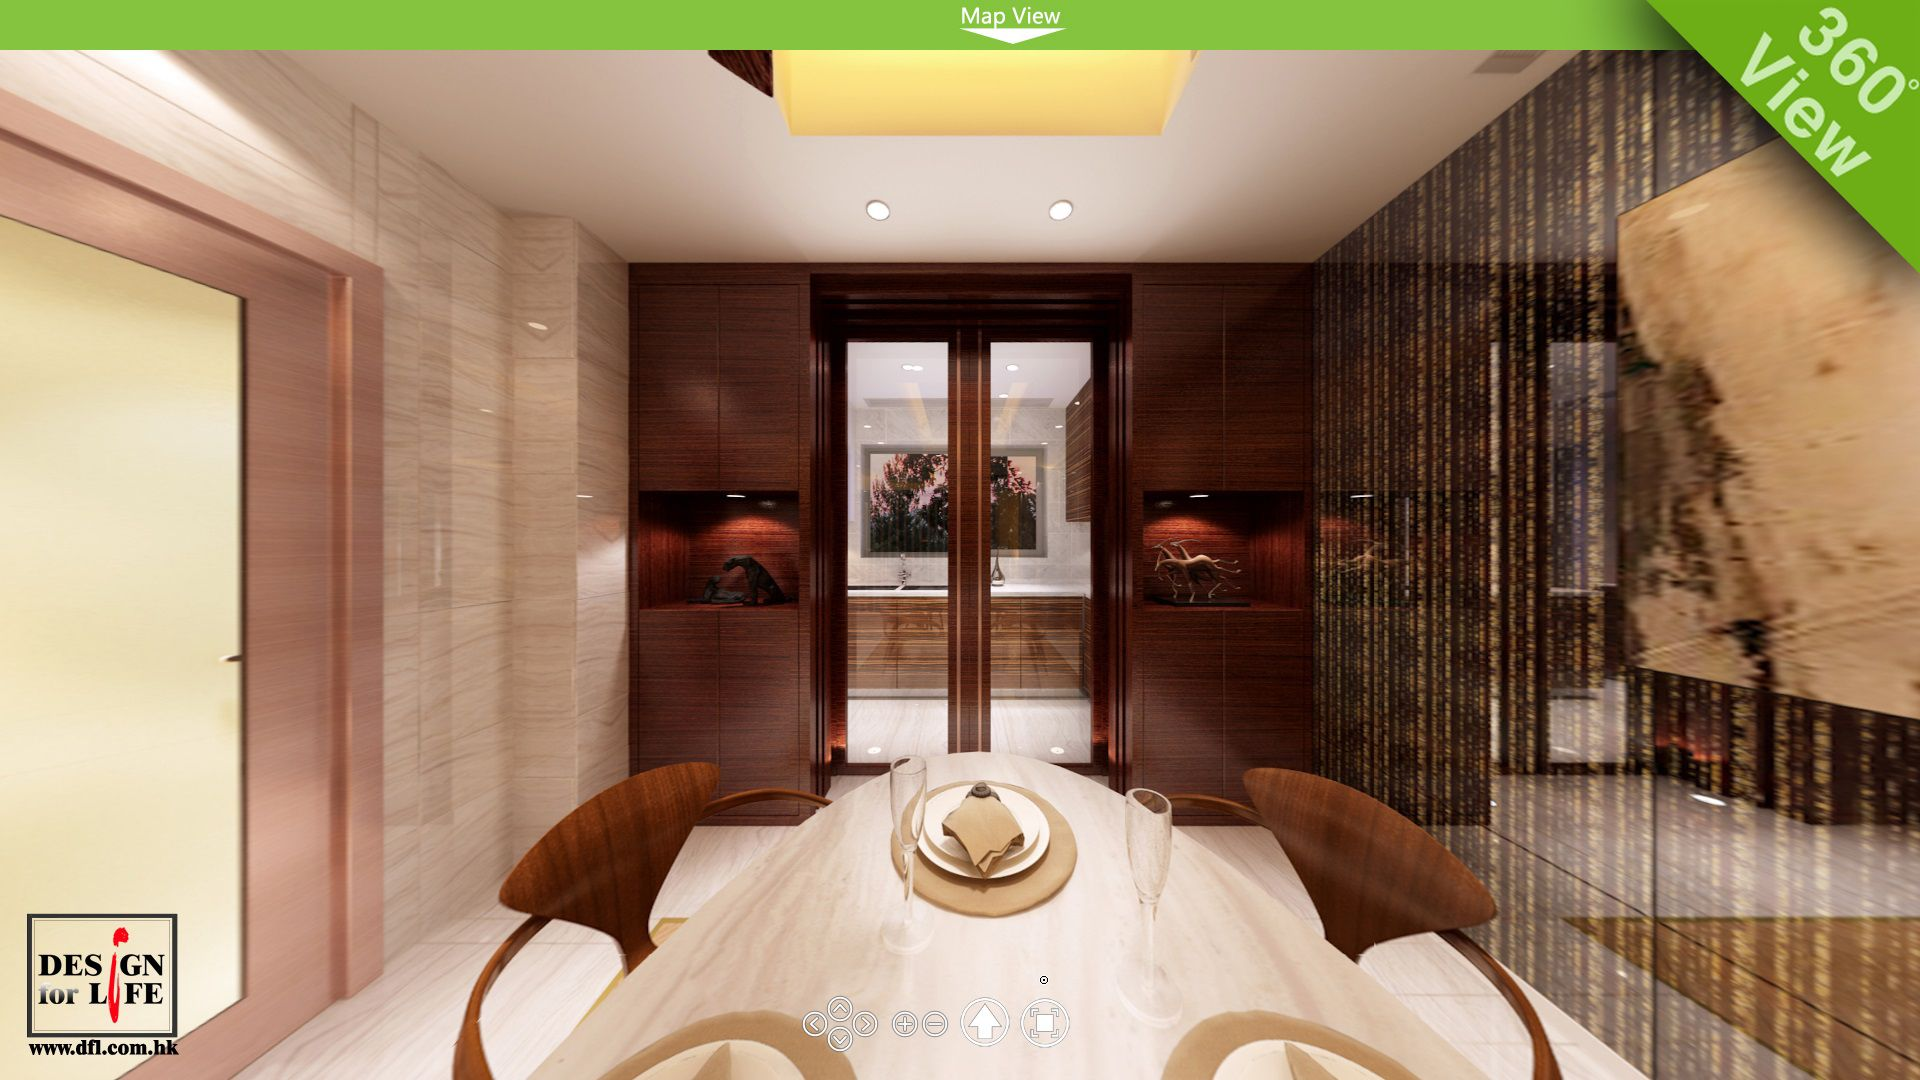 Interior design home projects - Project The Green Of Hong Kong 360rendering Dinning Area Interior Design Home